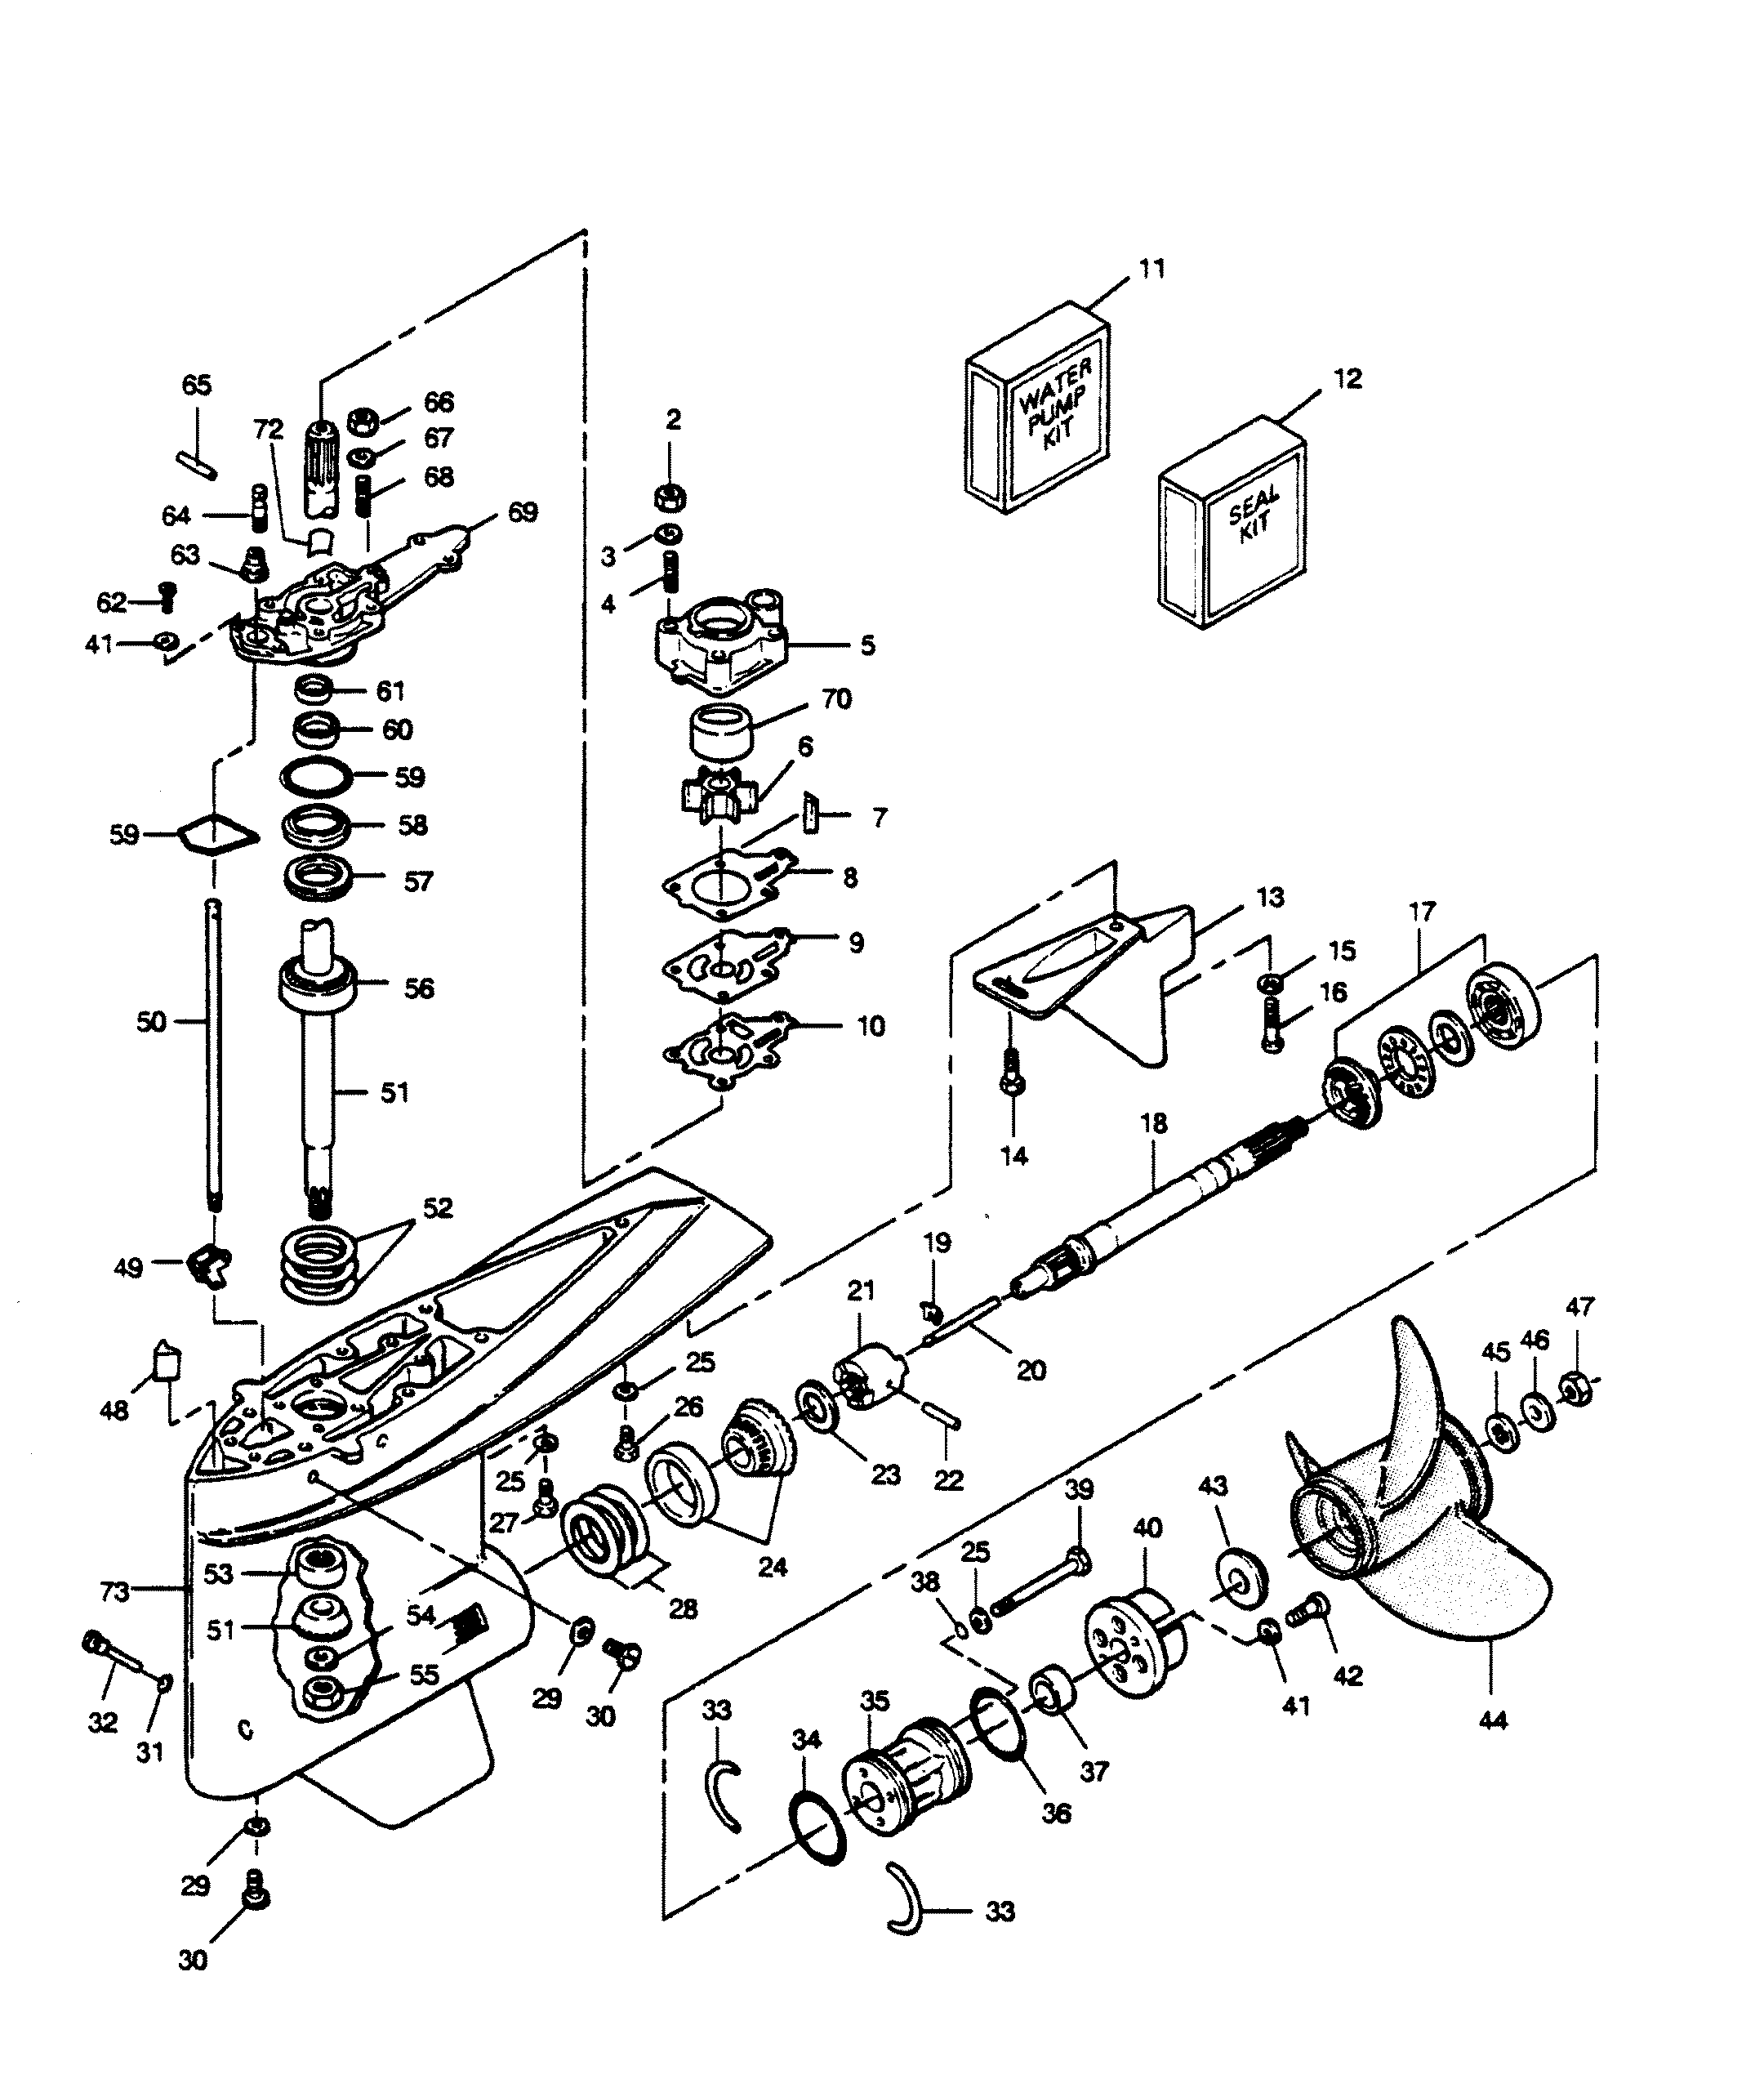 85 hp force outboard wiring diagram mercury | force | 125 h.p. (1989 l-drive) | 125ld9b | gear ...